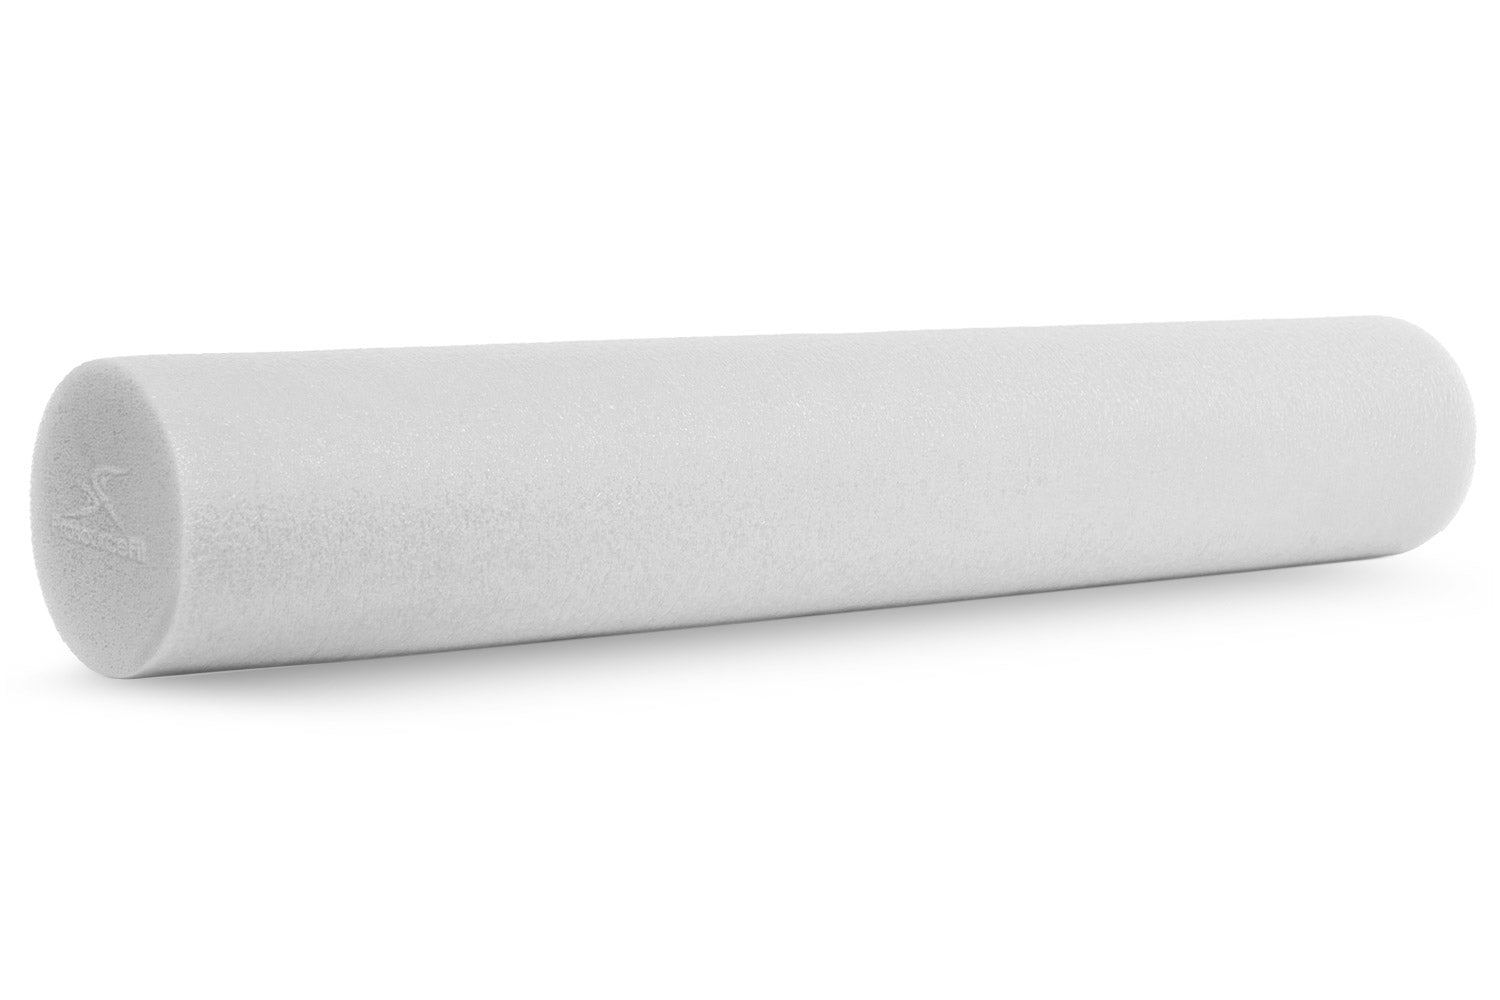 36x6 White Flex Foam Roller